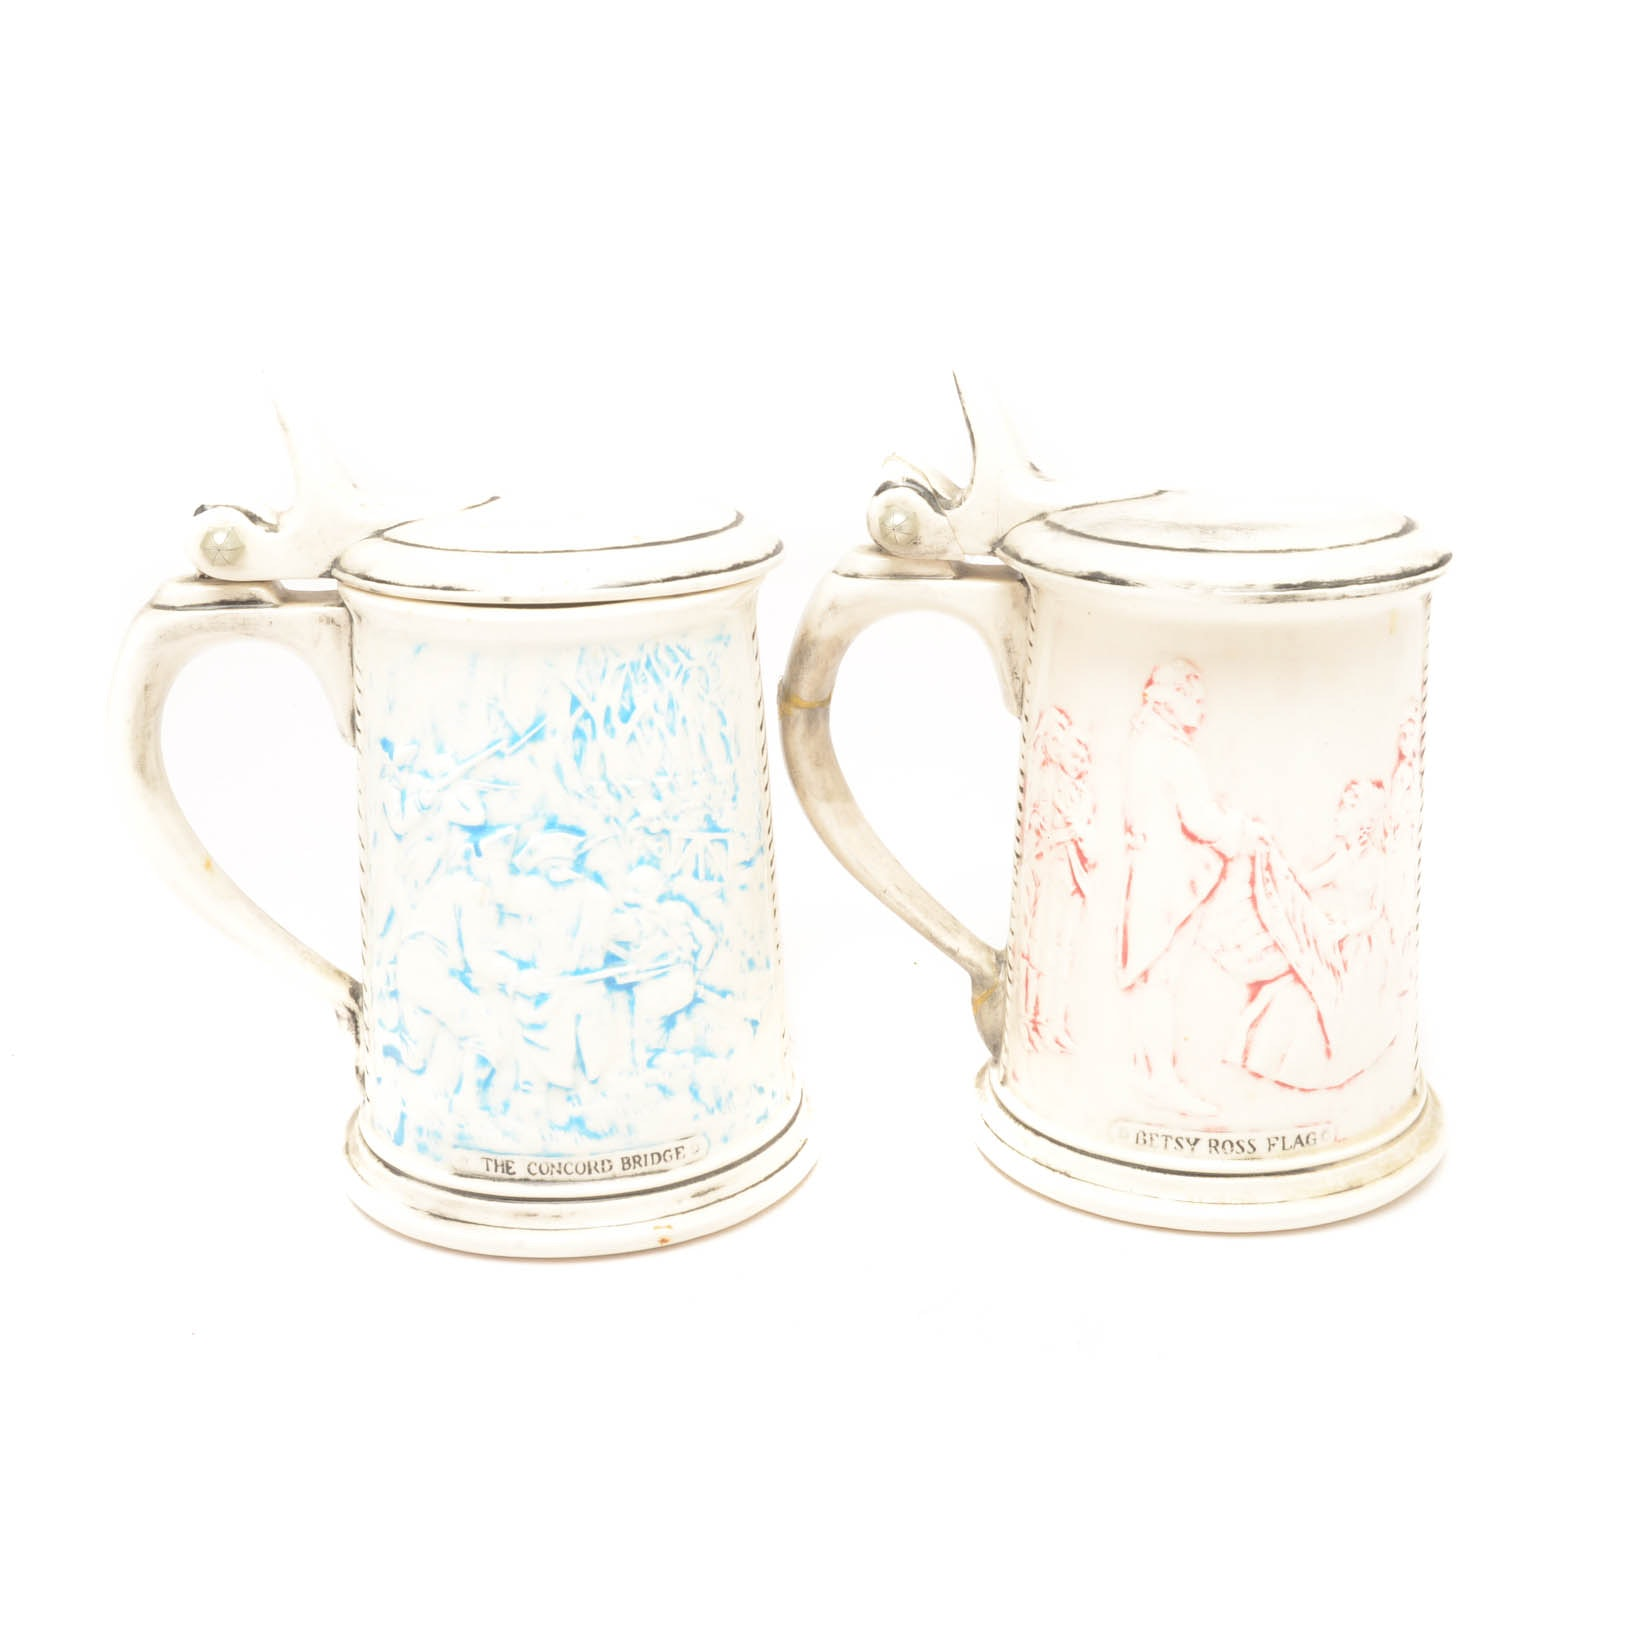 Pair of American Revolution Themed Steins